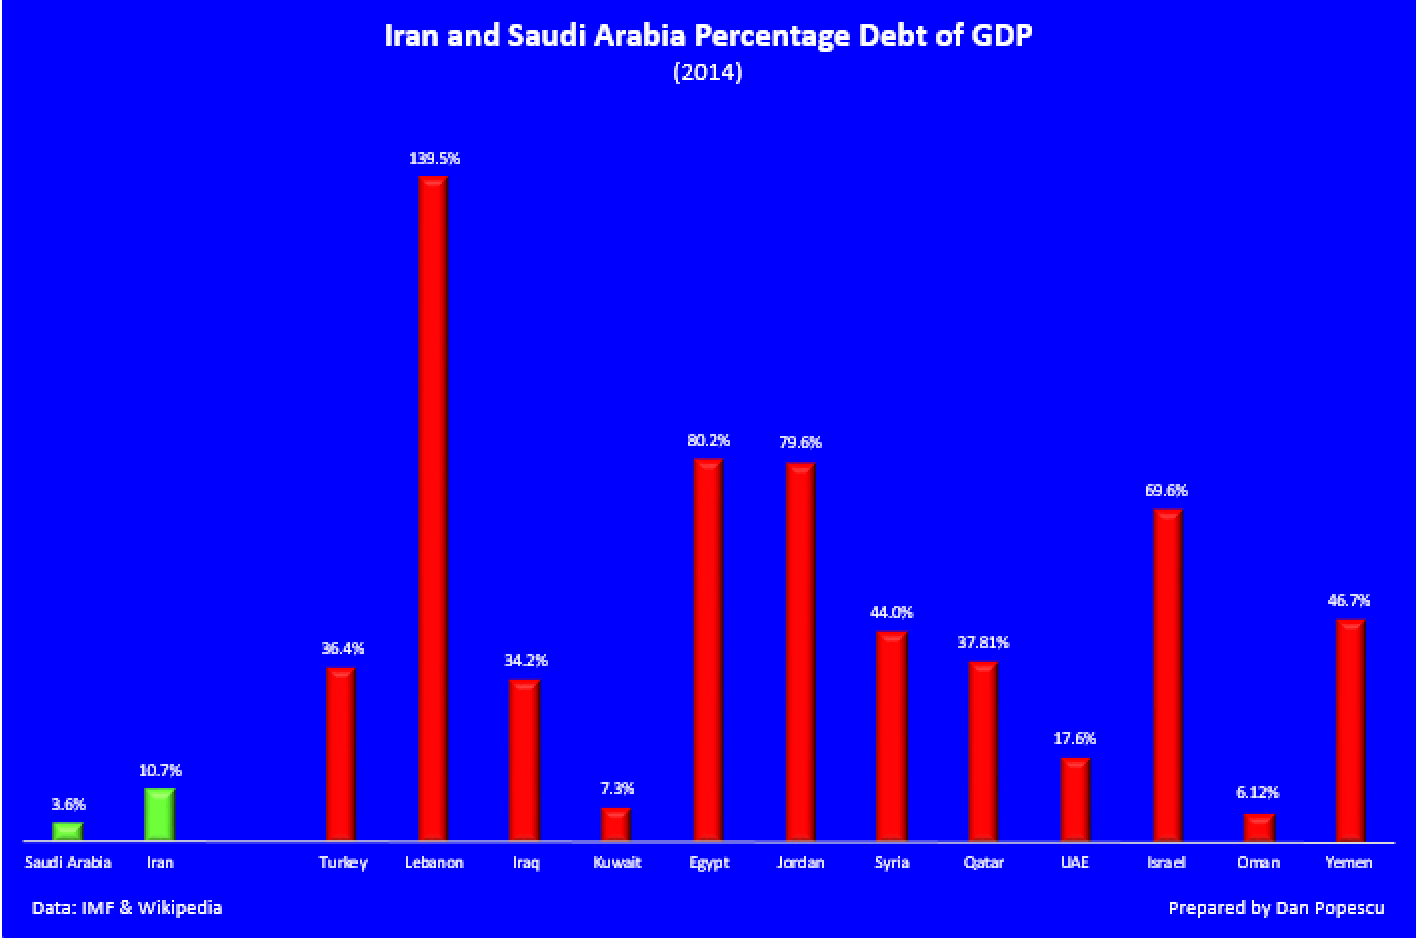 Iran and Saudi Arabia percentage debt of GDP